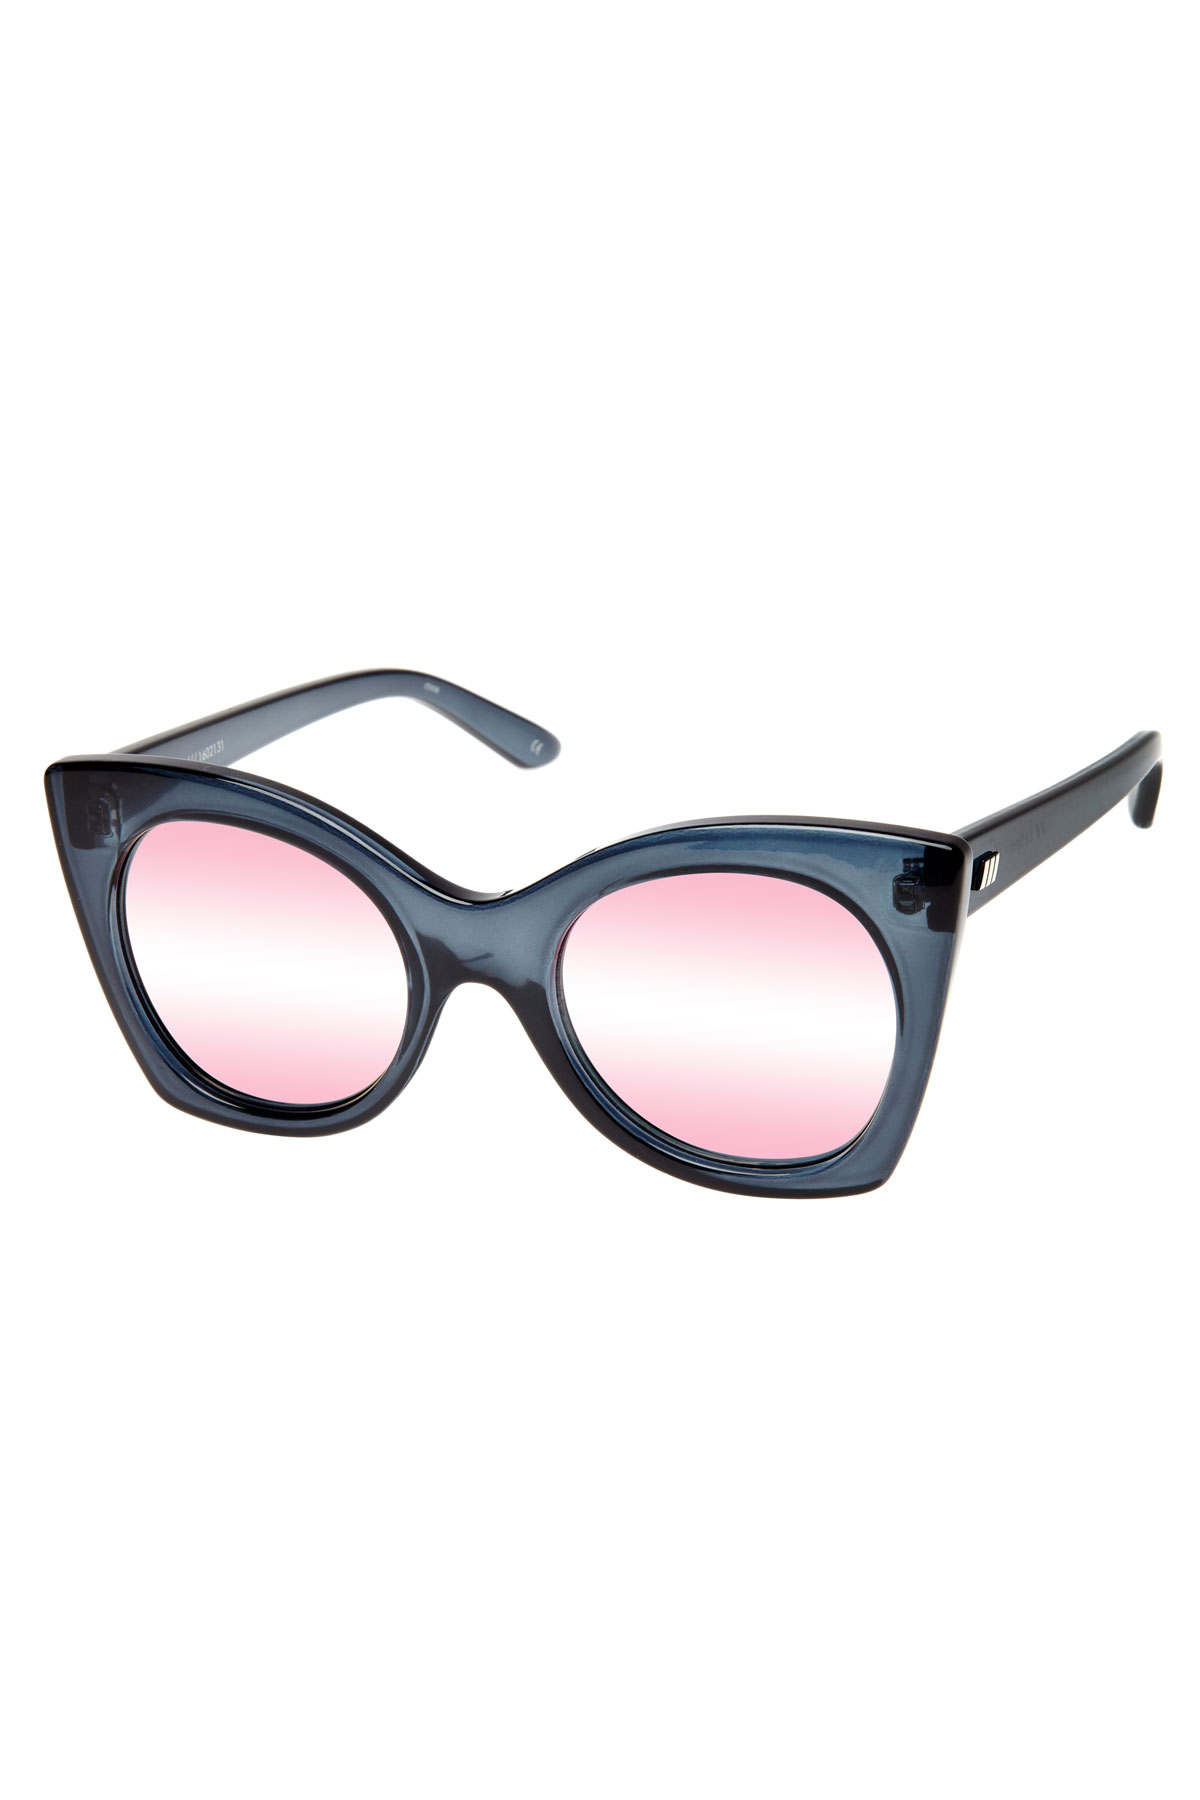 Savanna Rose Grad Mirror Lens Cateye Sunglasses - Slate 1